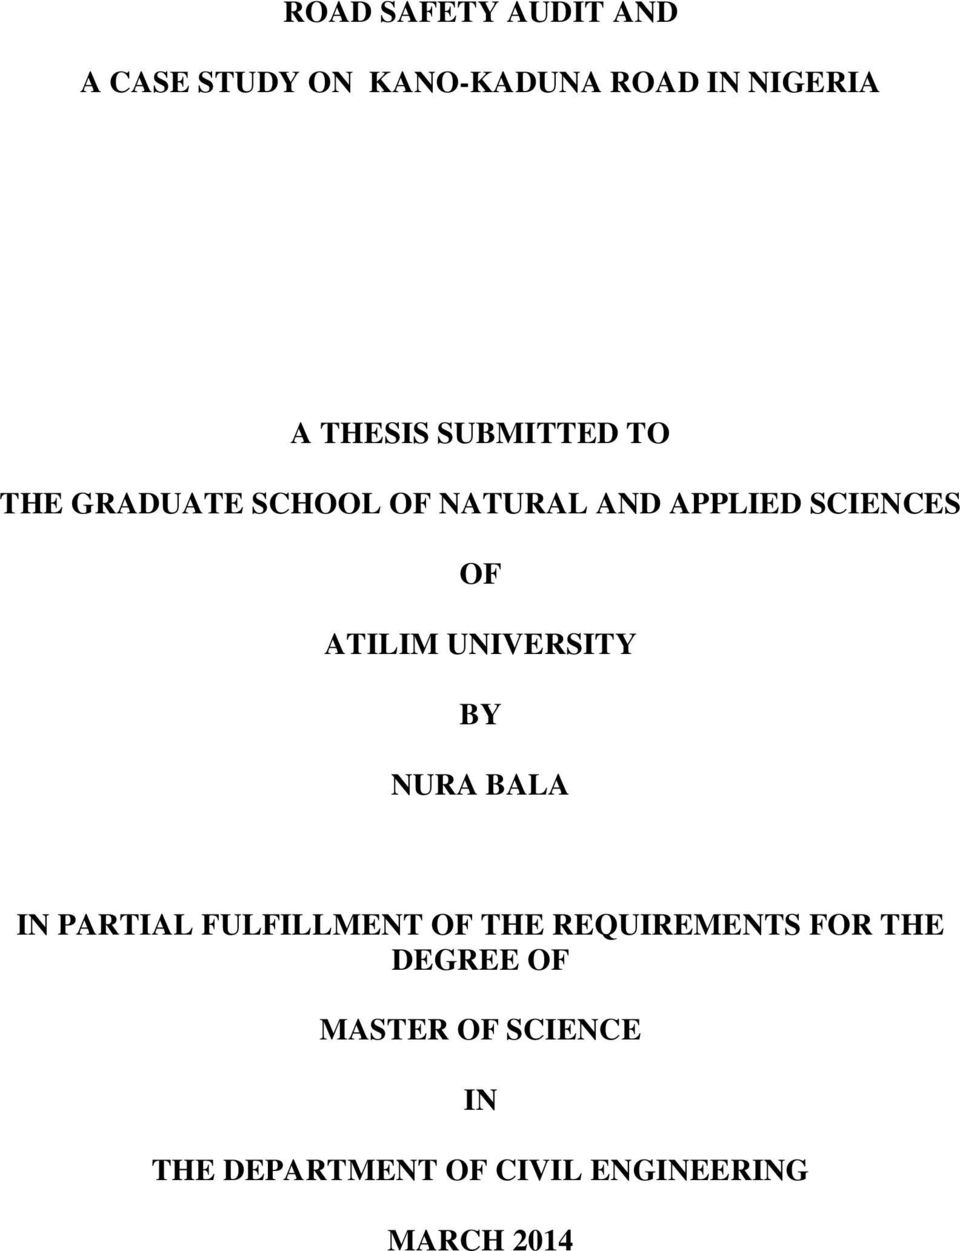 a thesis submitted for the degree of master